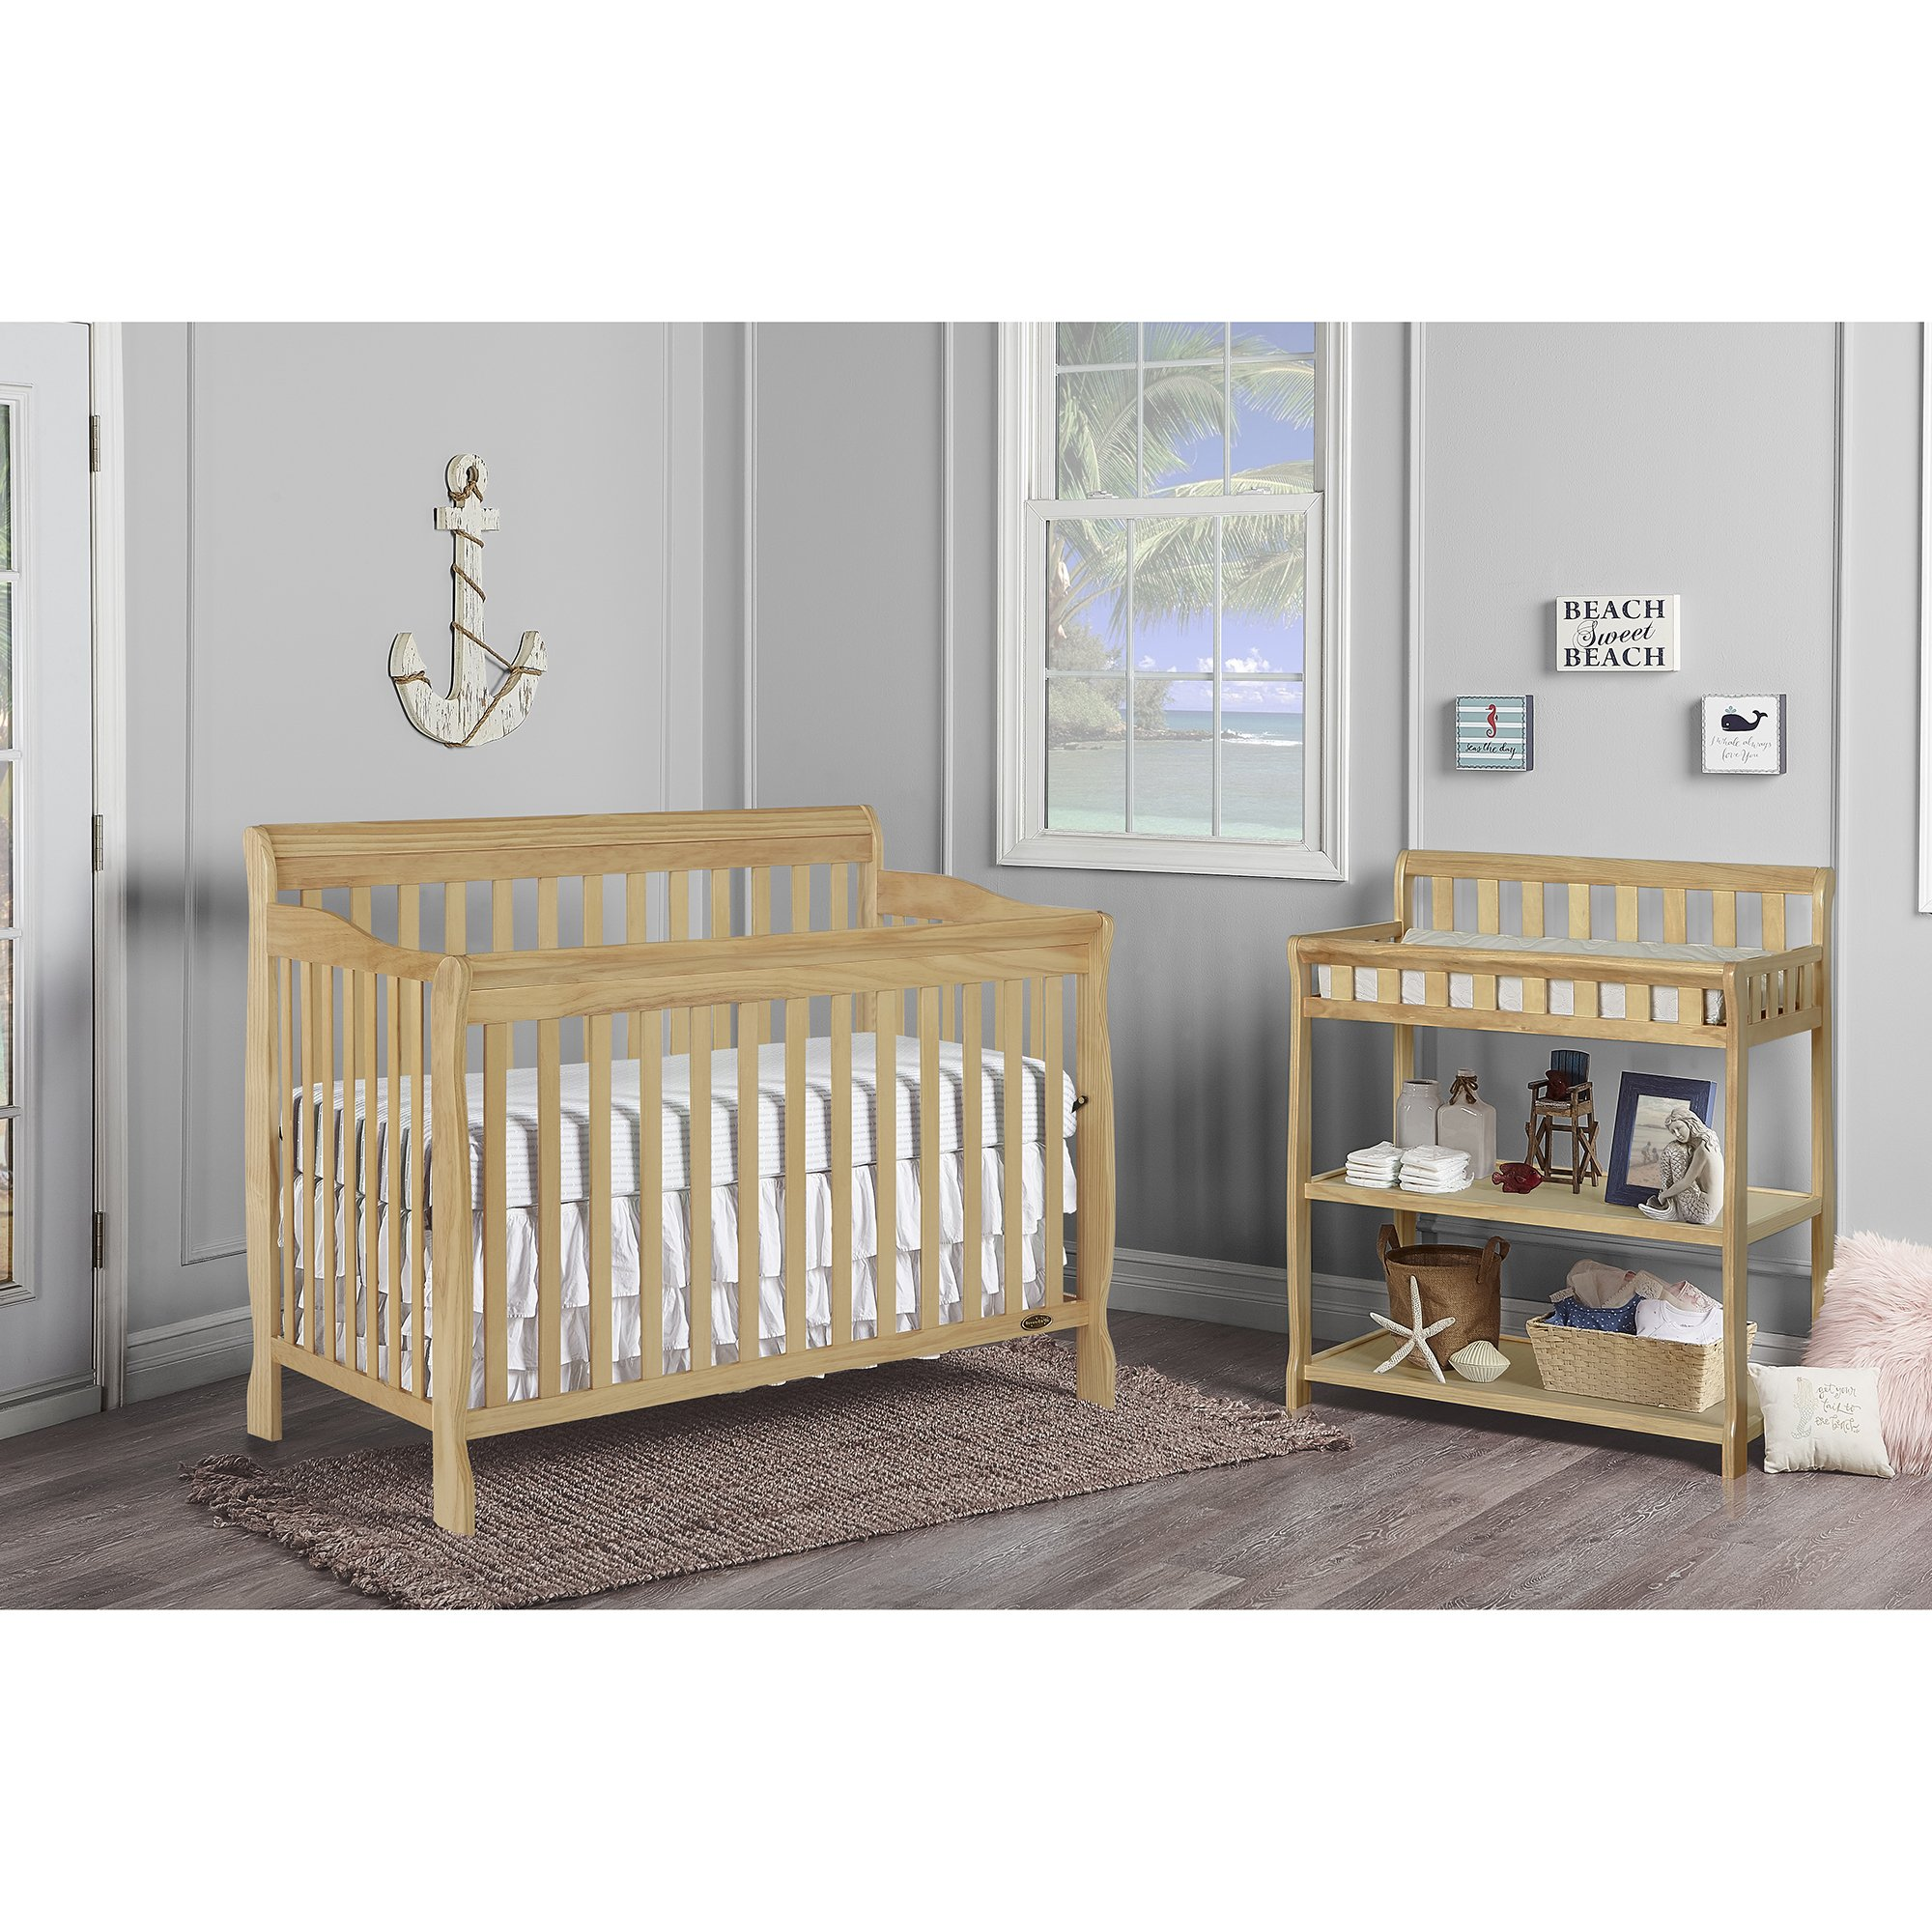 Dream On Me Ashton 5 in 1 Convertible Crib, Natural by Dream On Me (Image #3)